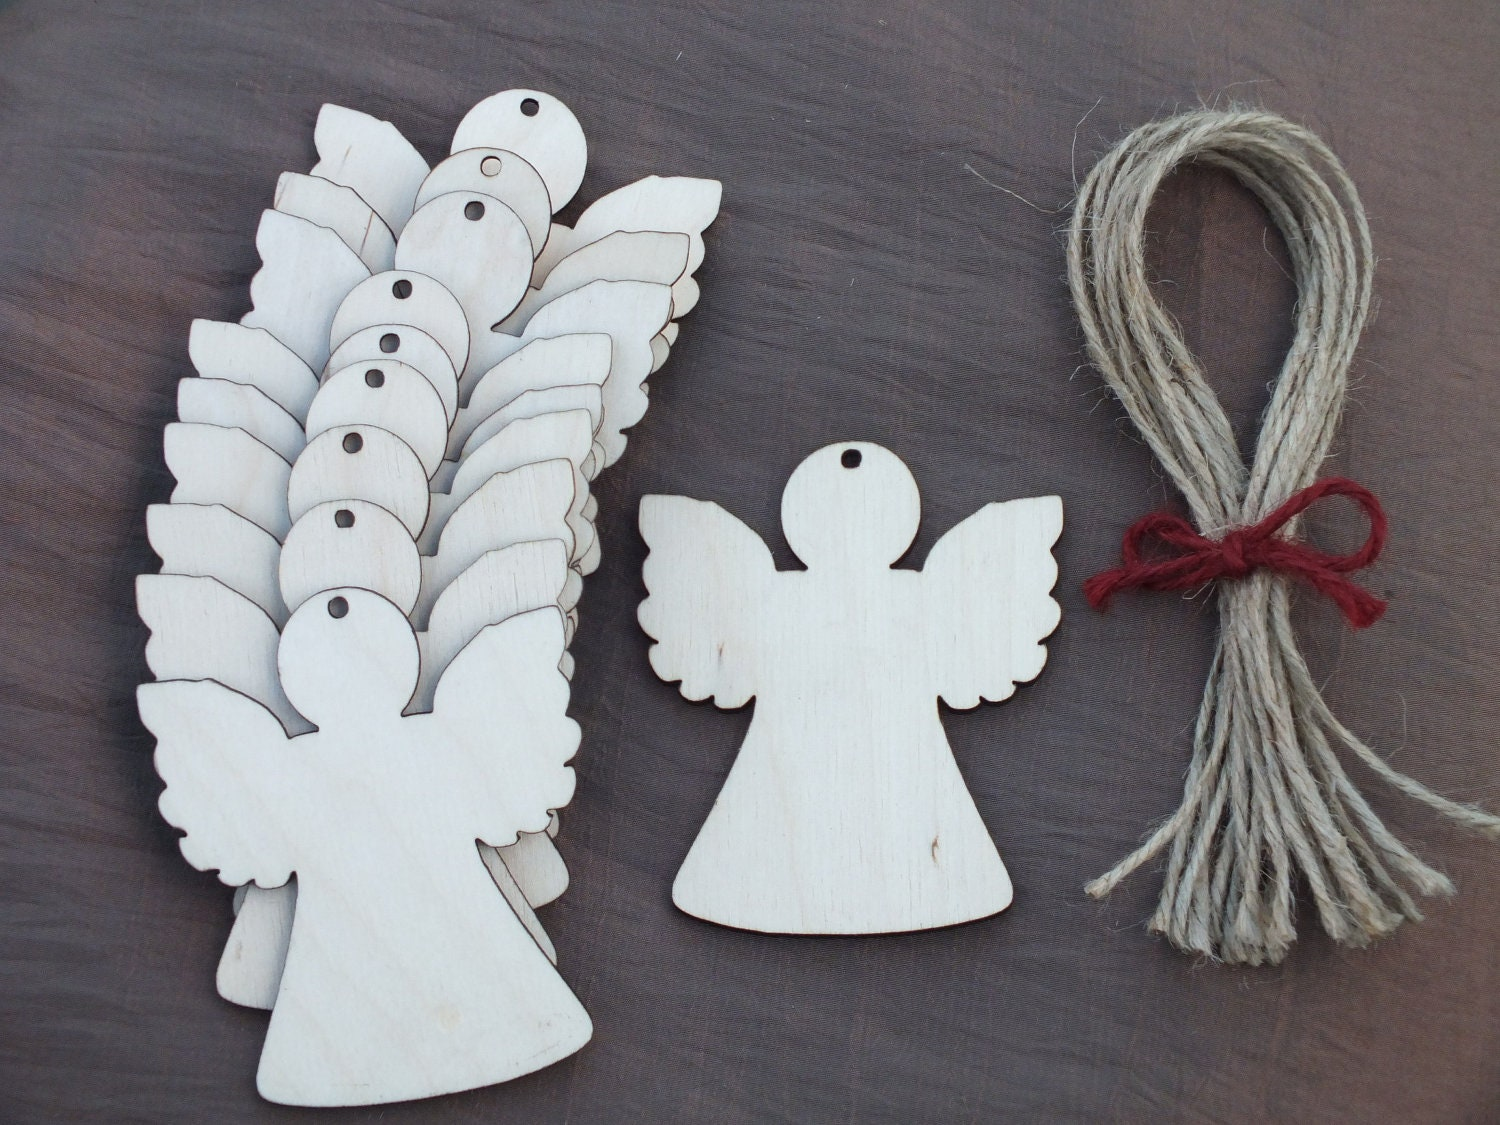 10x Wooden Angel Rustic Decoration Gift Wedding Hanging Unpainted Shape Tag 9x7cm